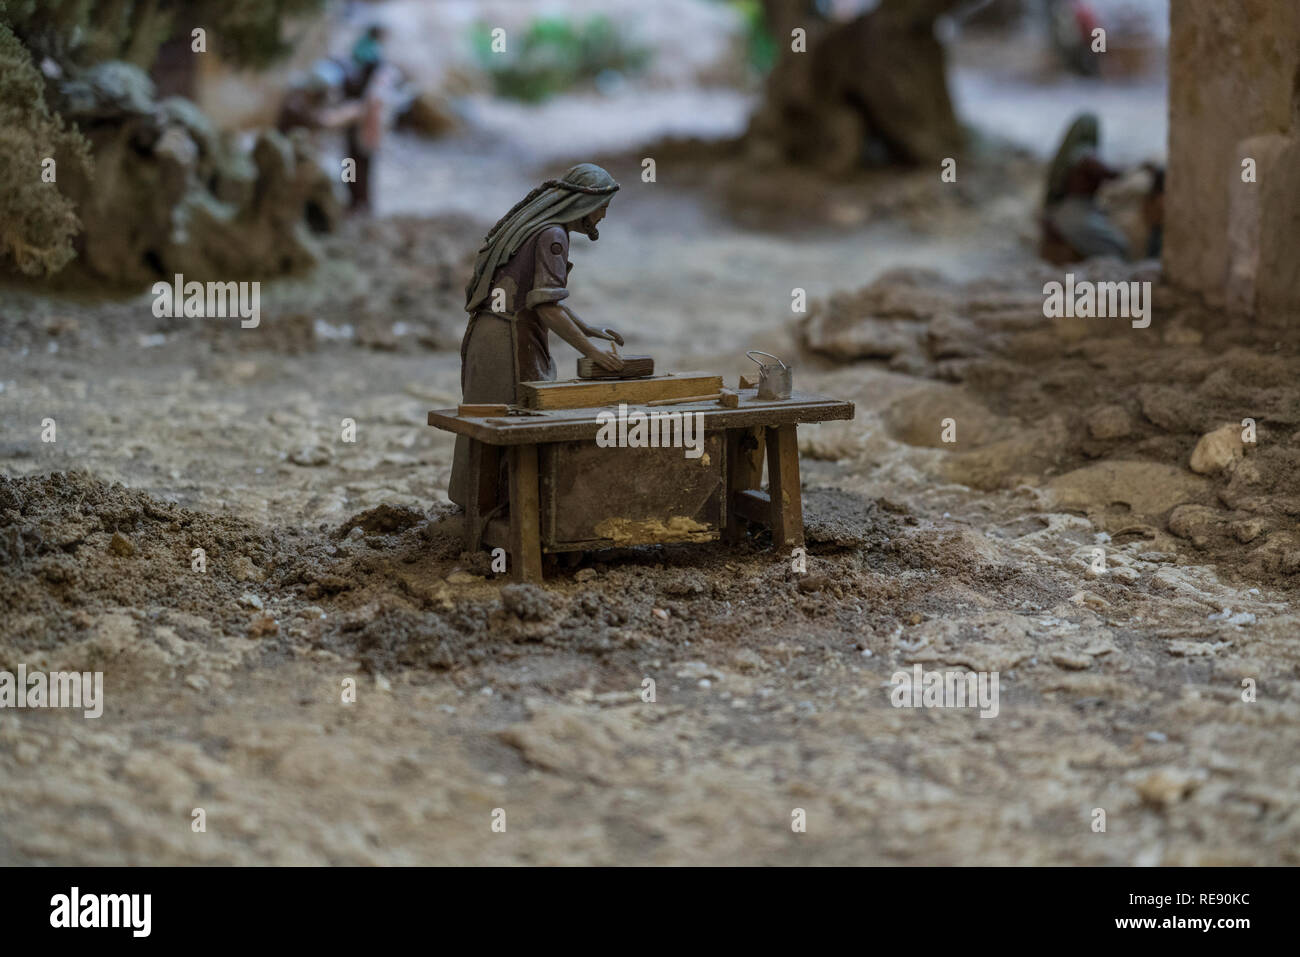 Cuenca, Ecuador - January 3, 2019 - Largest animated nativity scene in South America - woodworker animated at his bench - Stock Image